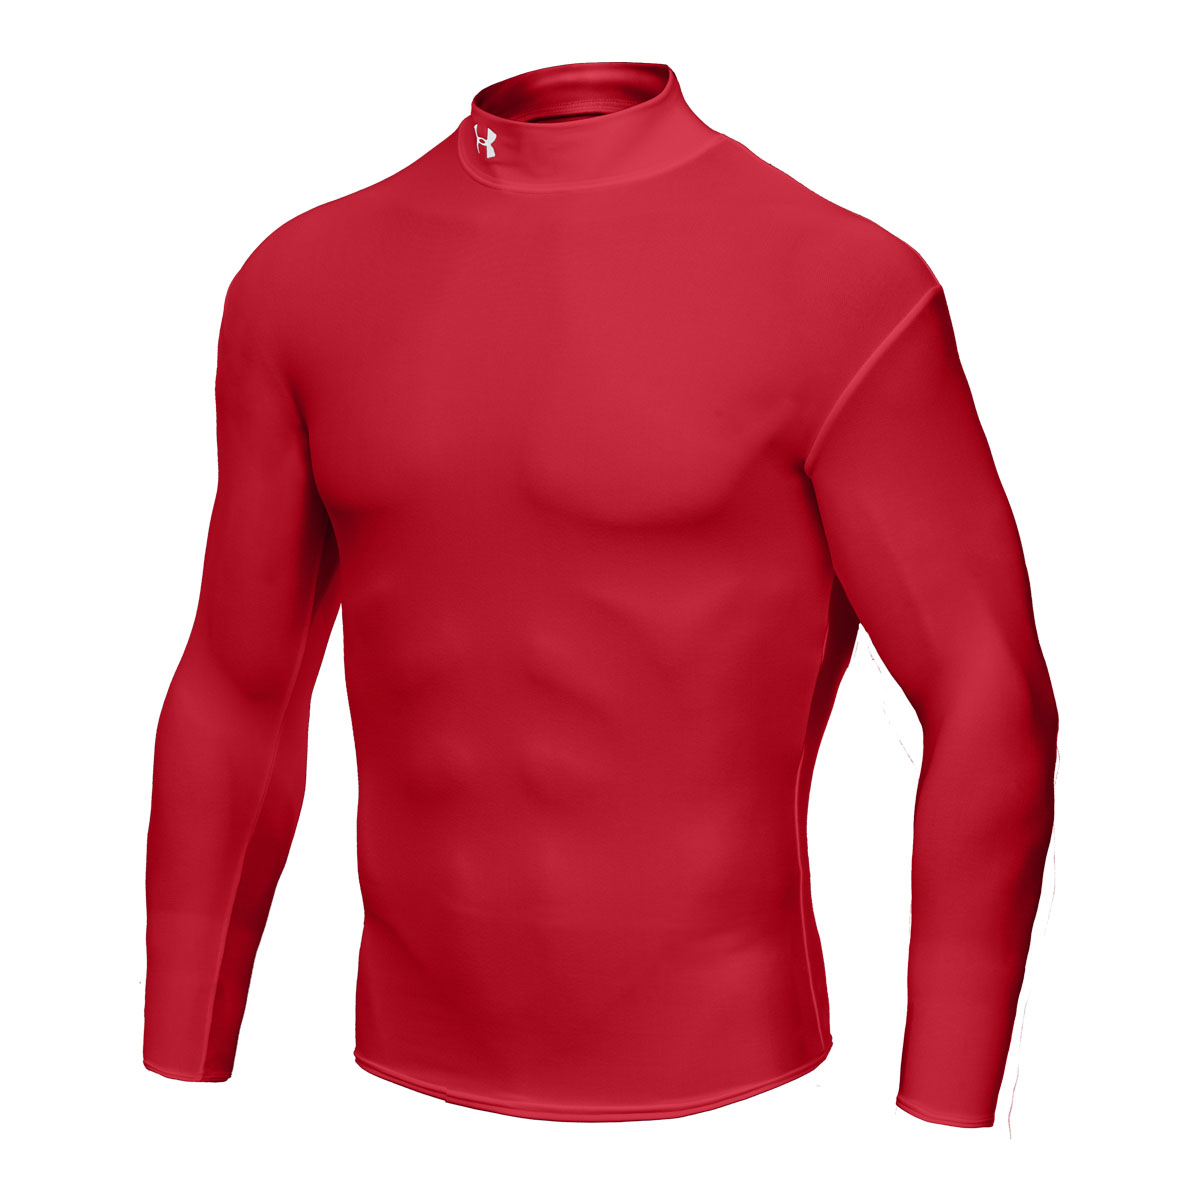 Under armour cold gear ls compression mock base layer ebay for Under armour cold gear shirt mens